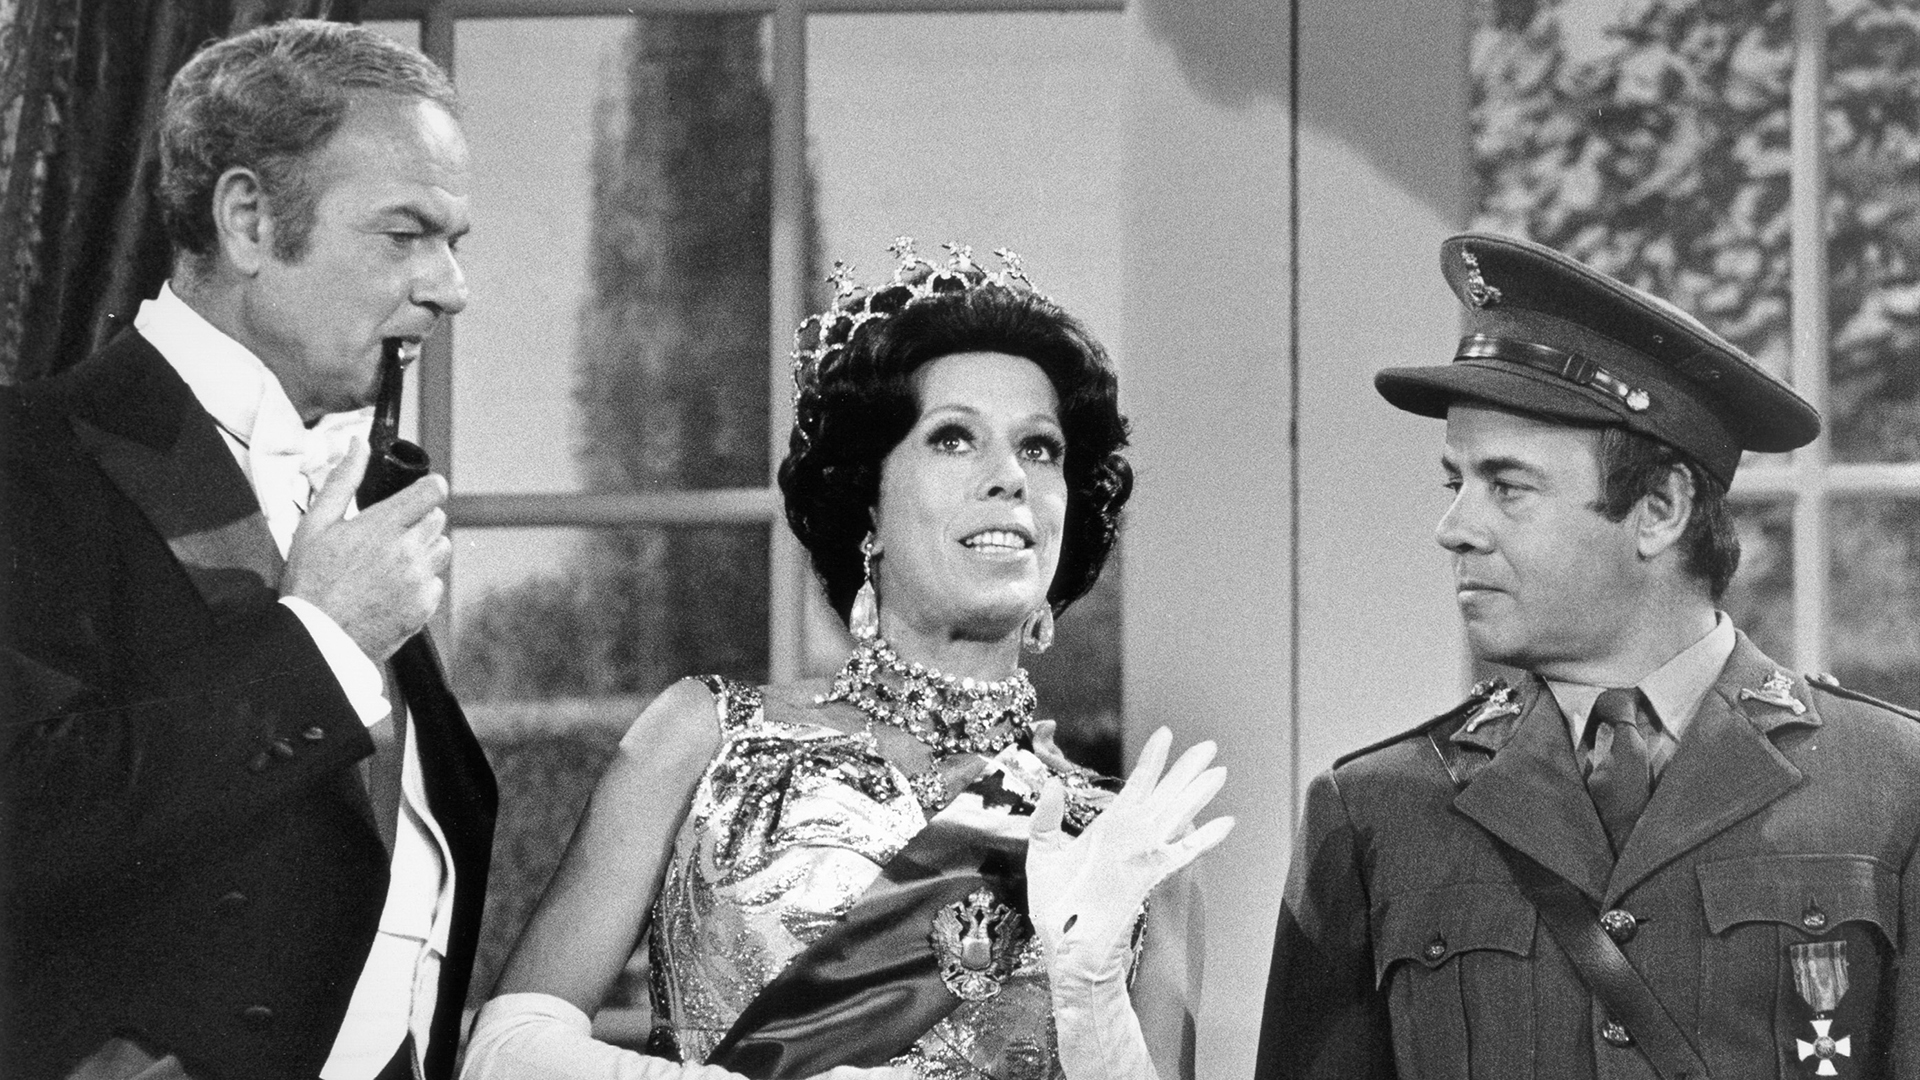 Carol Burnett is comedy royalty as Queen Elizabeth II, with Harvey Korman as the king, and Tim Conway as Private Newberry.